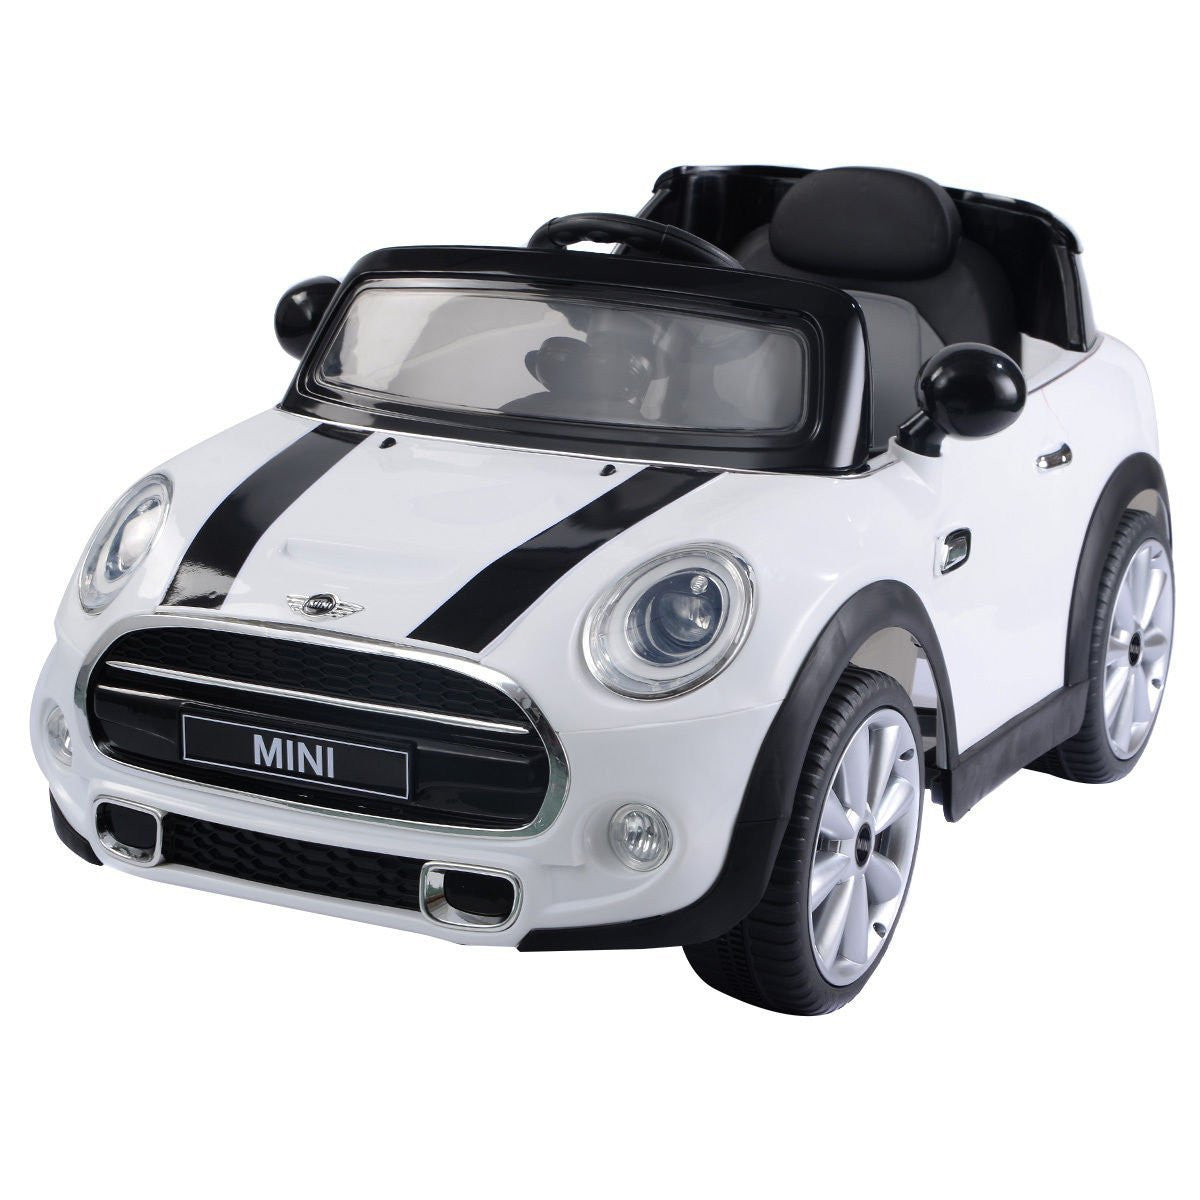 mini cooper remote control ride on car with leather seat car tots remote control ride on cars. Black Bedroom Furniture Sets. Home Design Ideas